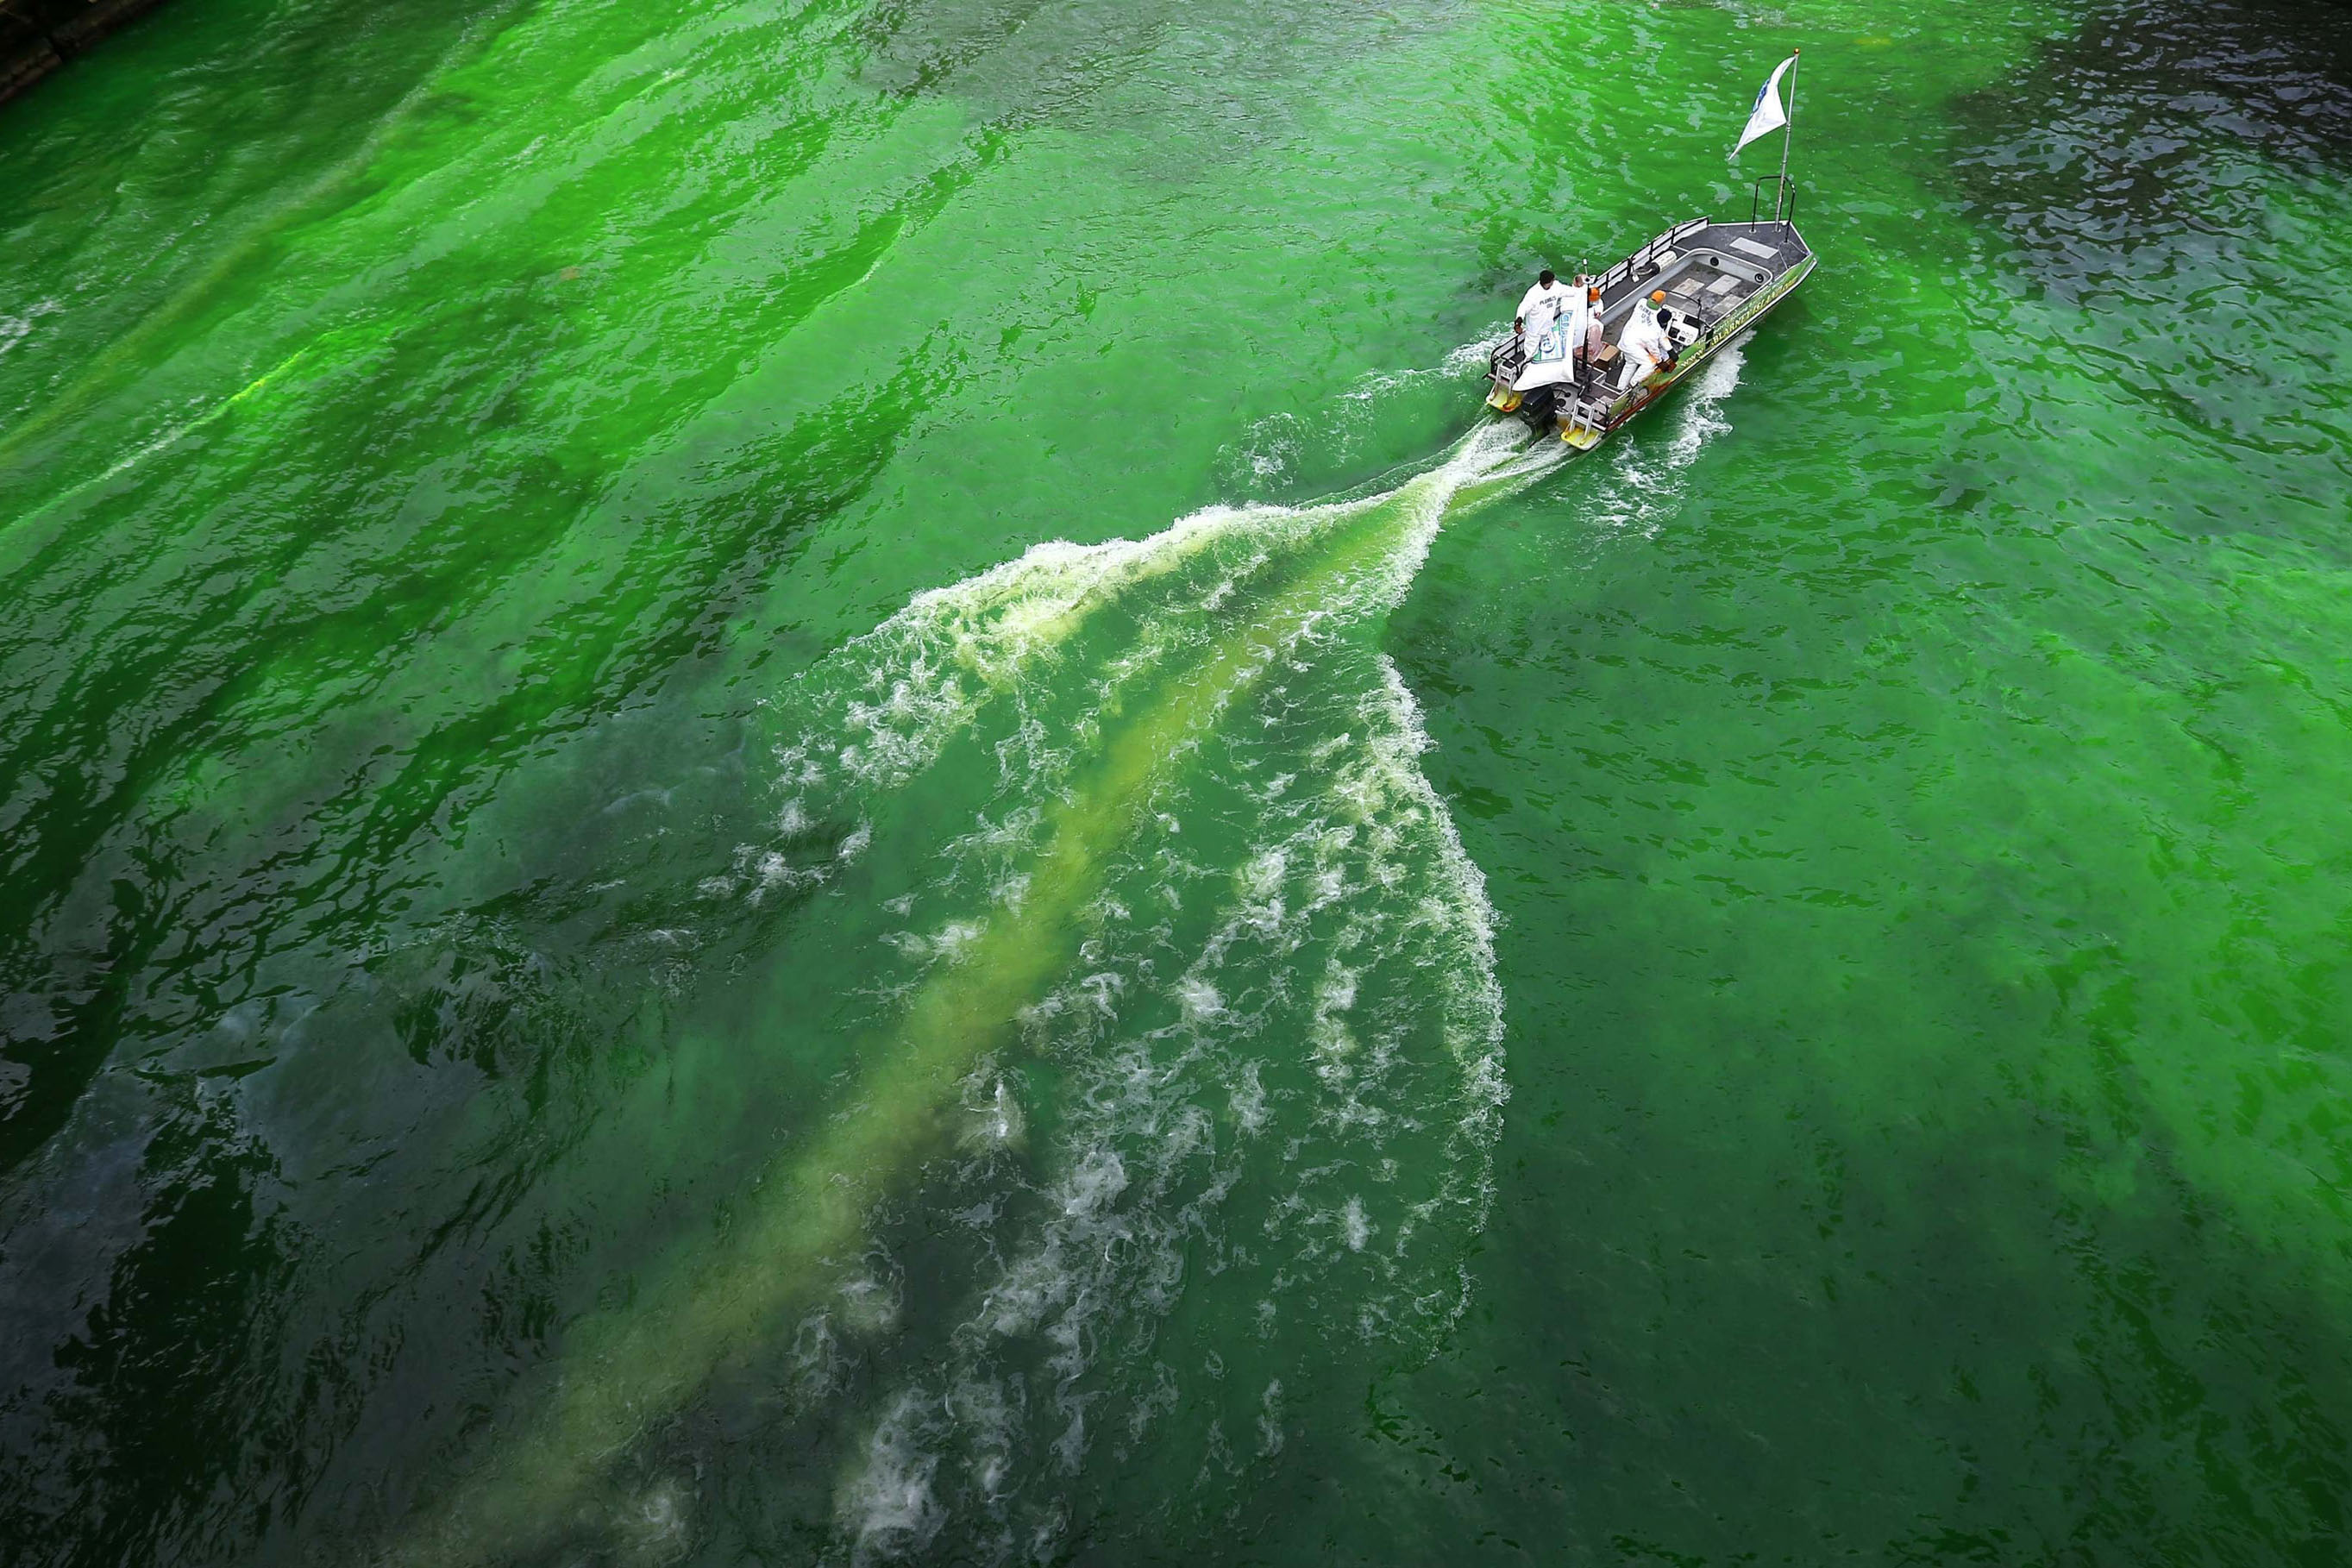 The Chicago River is dyed green in celebration of St. Patrick's Day in Chicago, March 15, 2014.